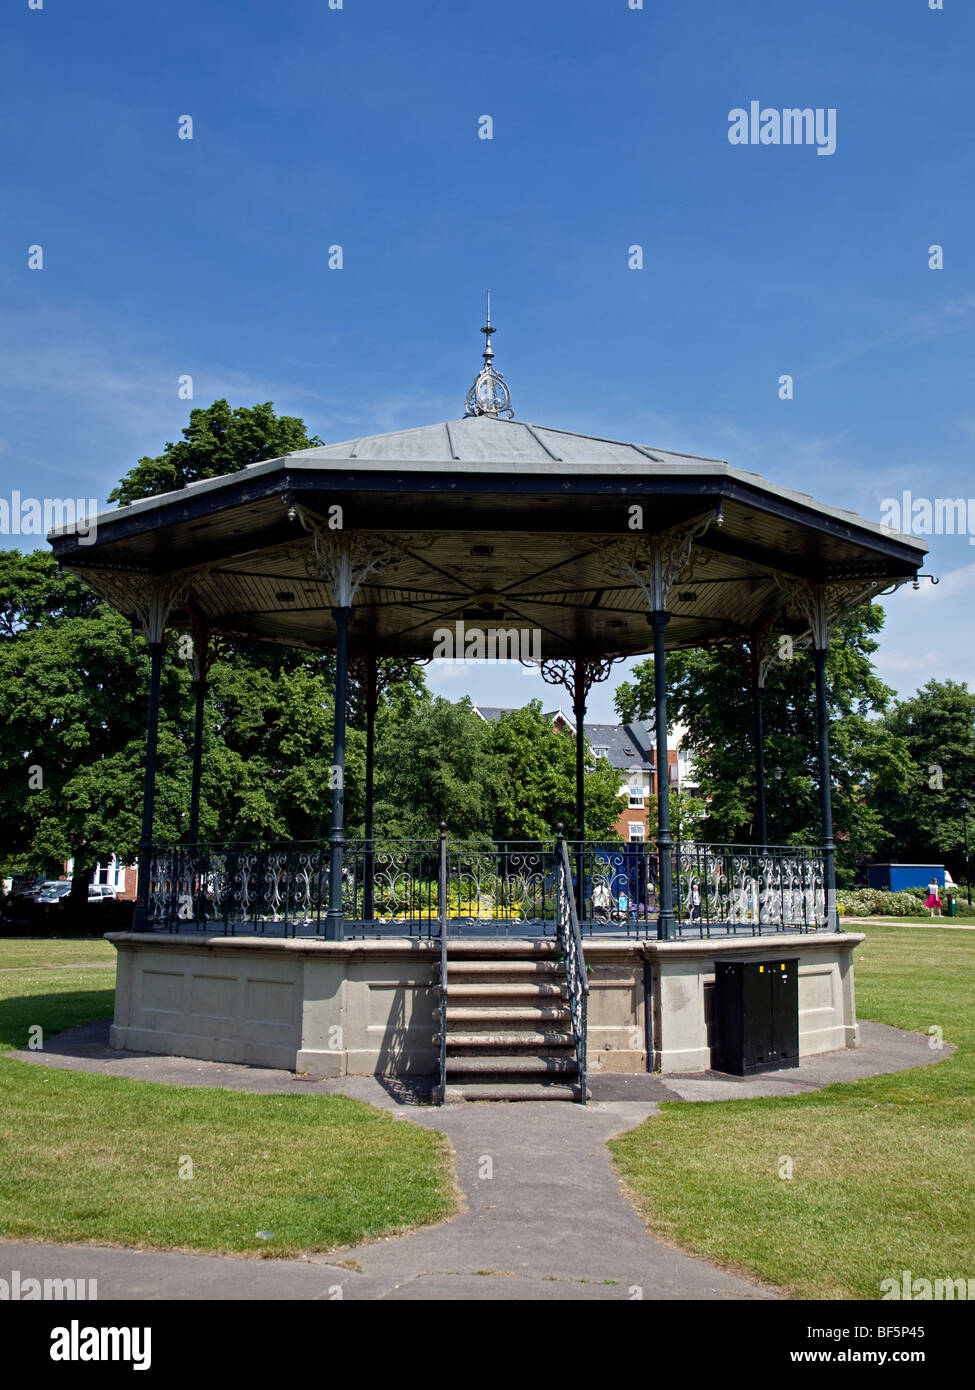 Bandstand in the Park, Eastleigh, Hampshire, England - Stock Image